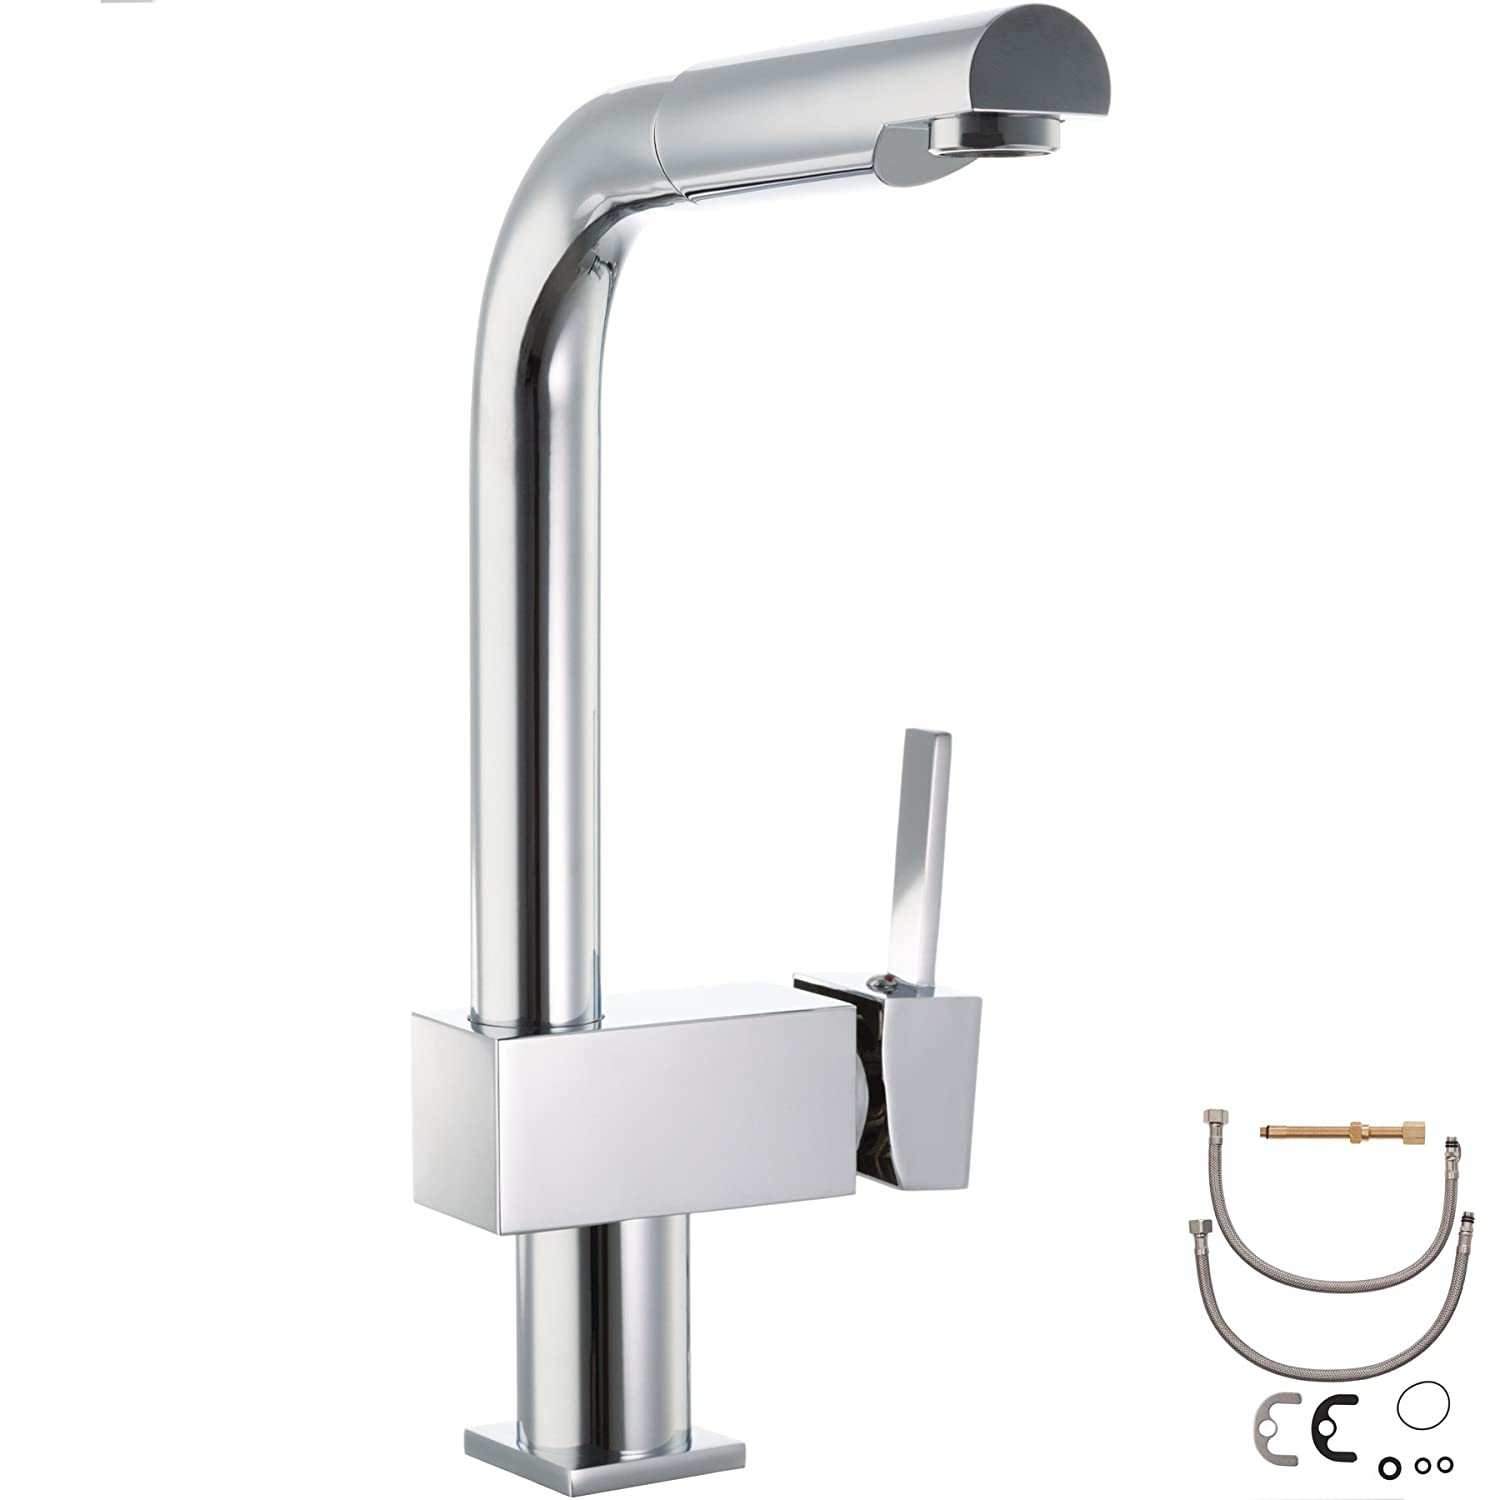 Type 12   402682 TecTake Wash basin faucet bath tap mixer - different models - (Type 12   402682)